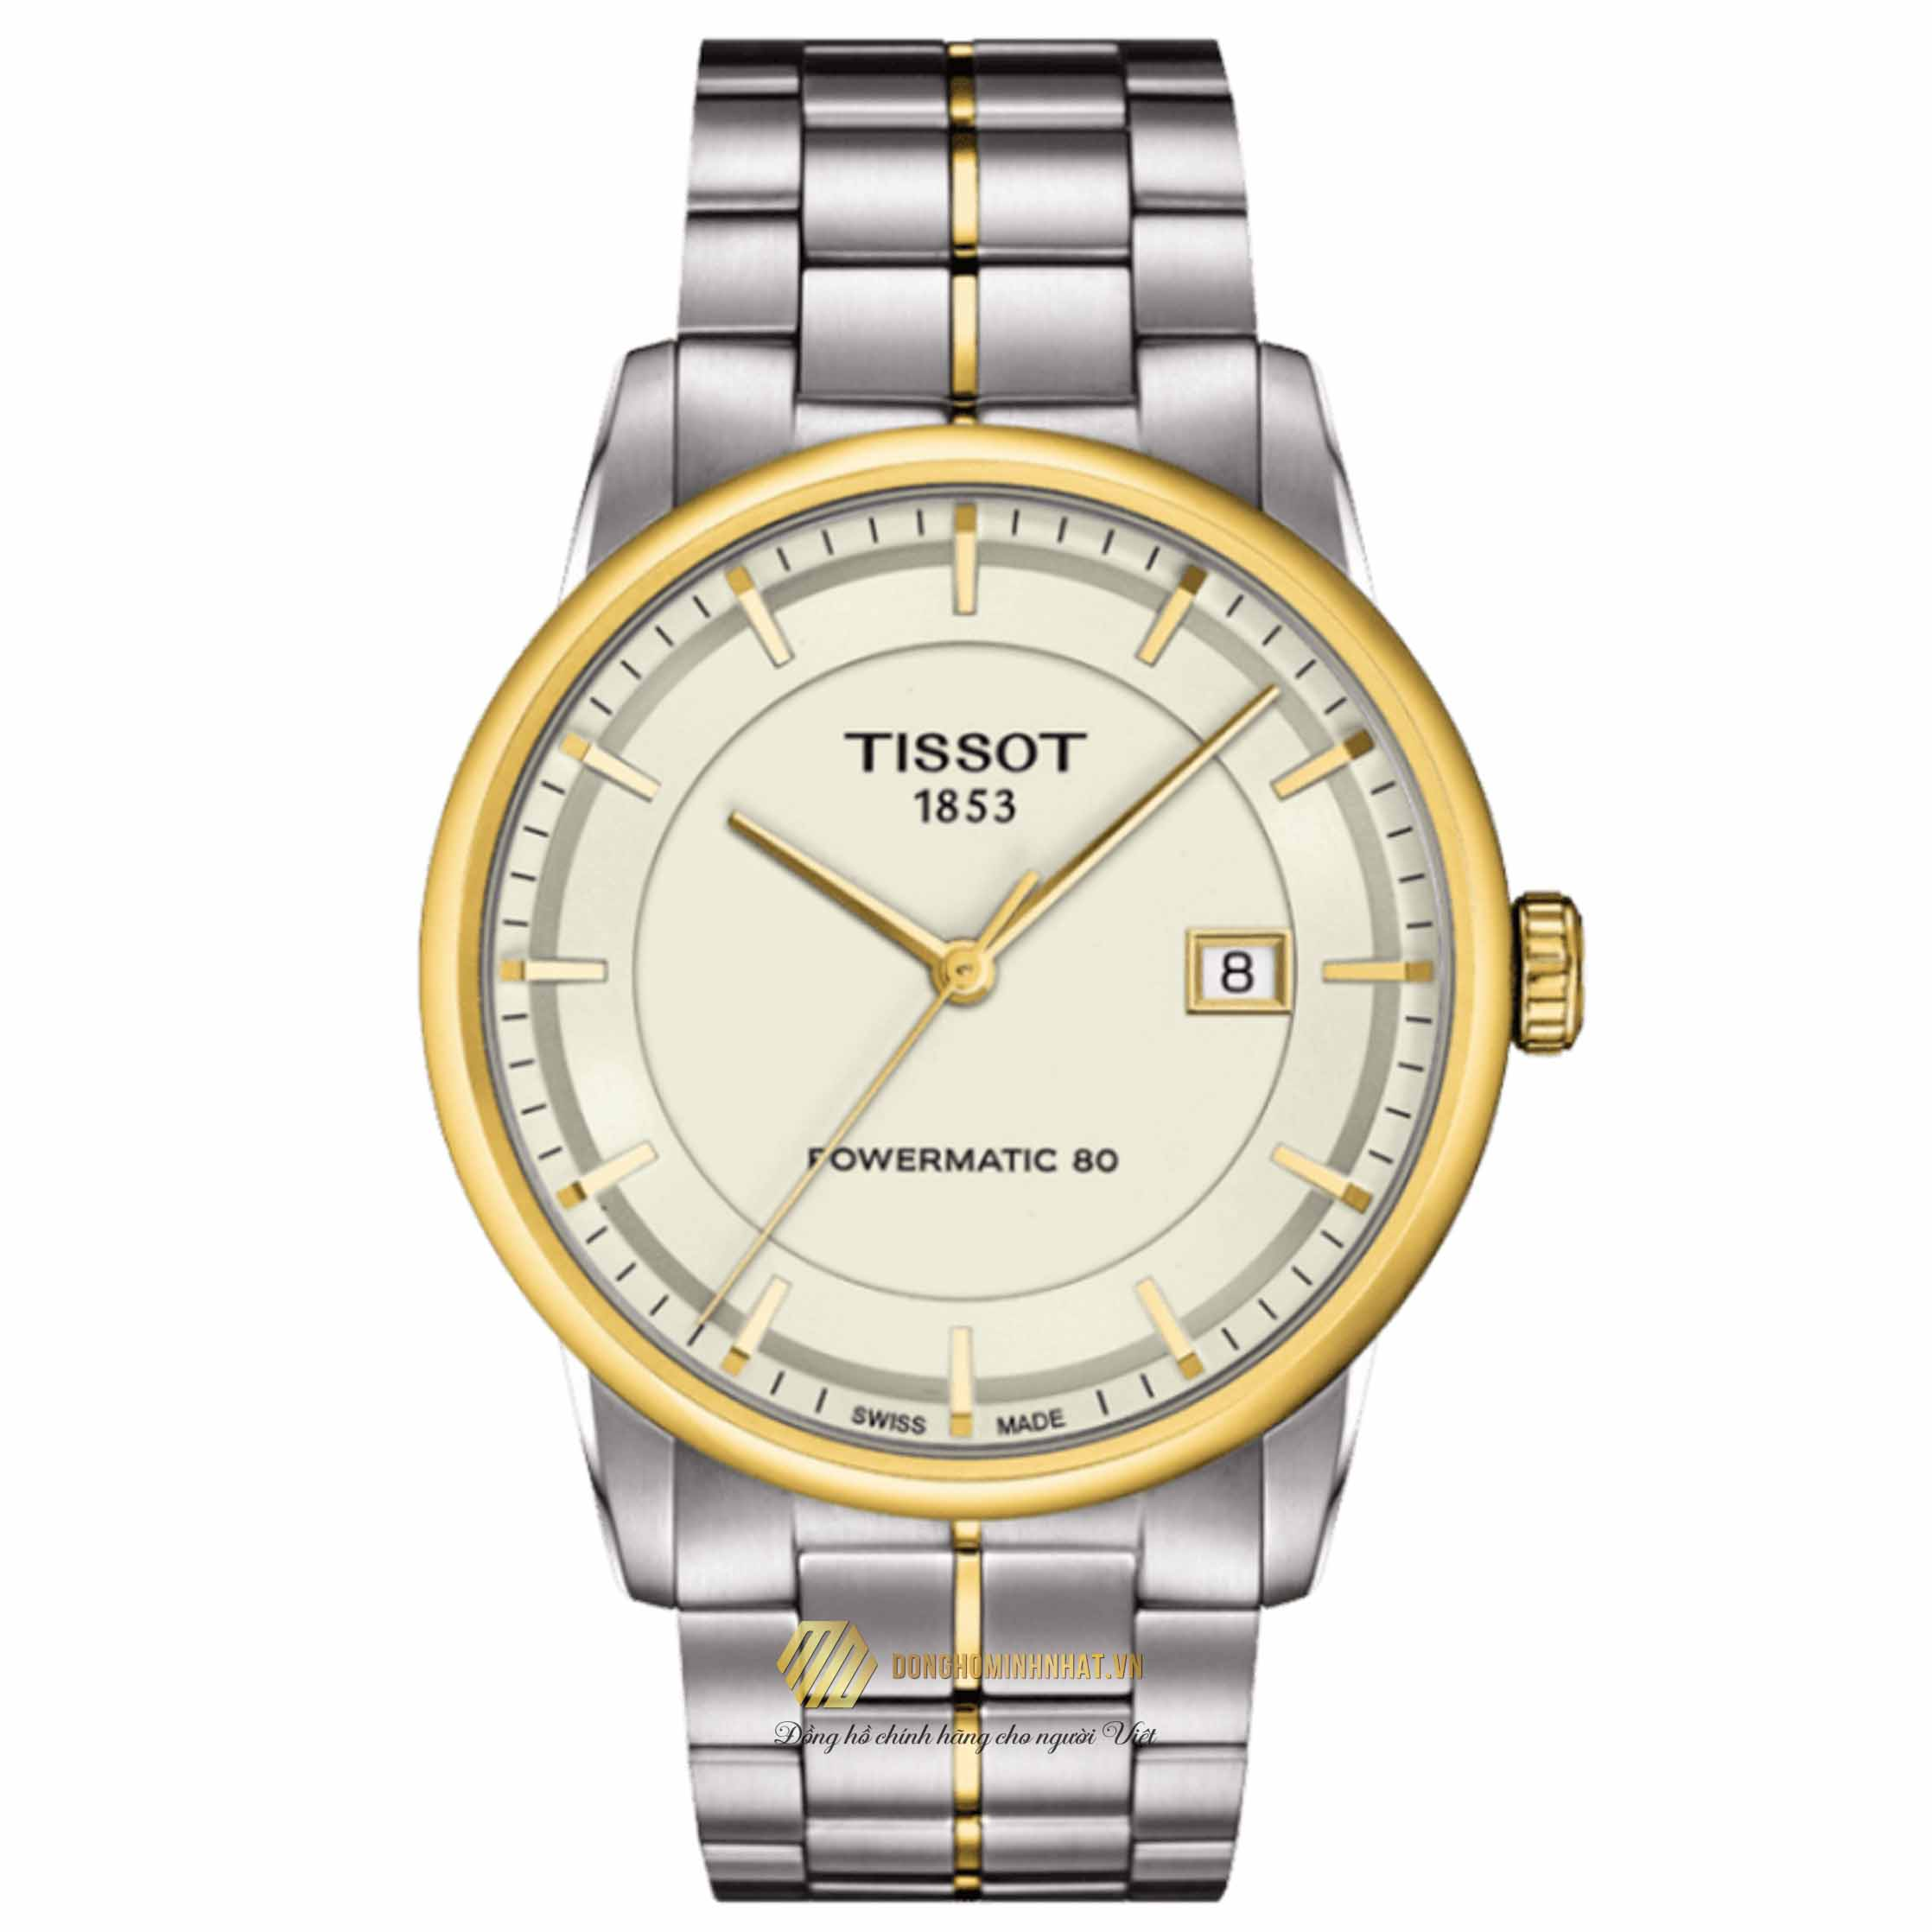 ĐỒNG HỒ TISSOT LUXURY AUTOMATIC T086.407.22.261.00